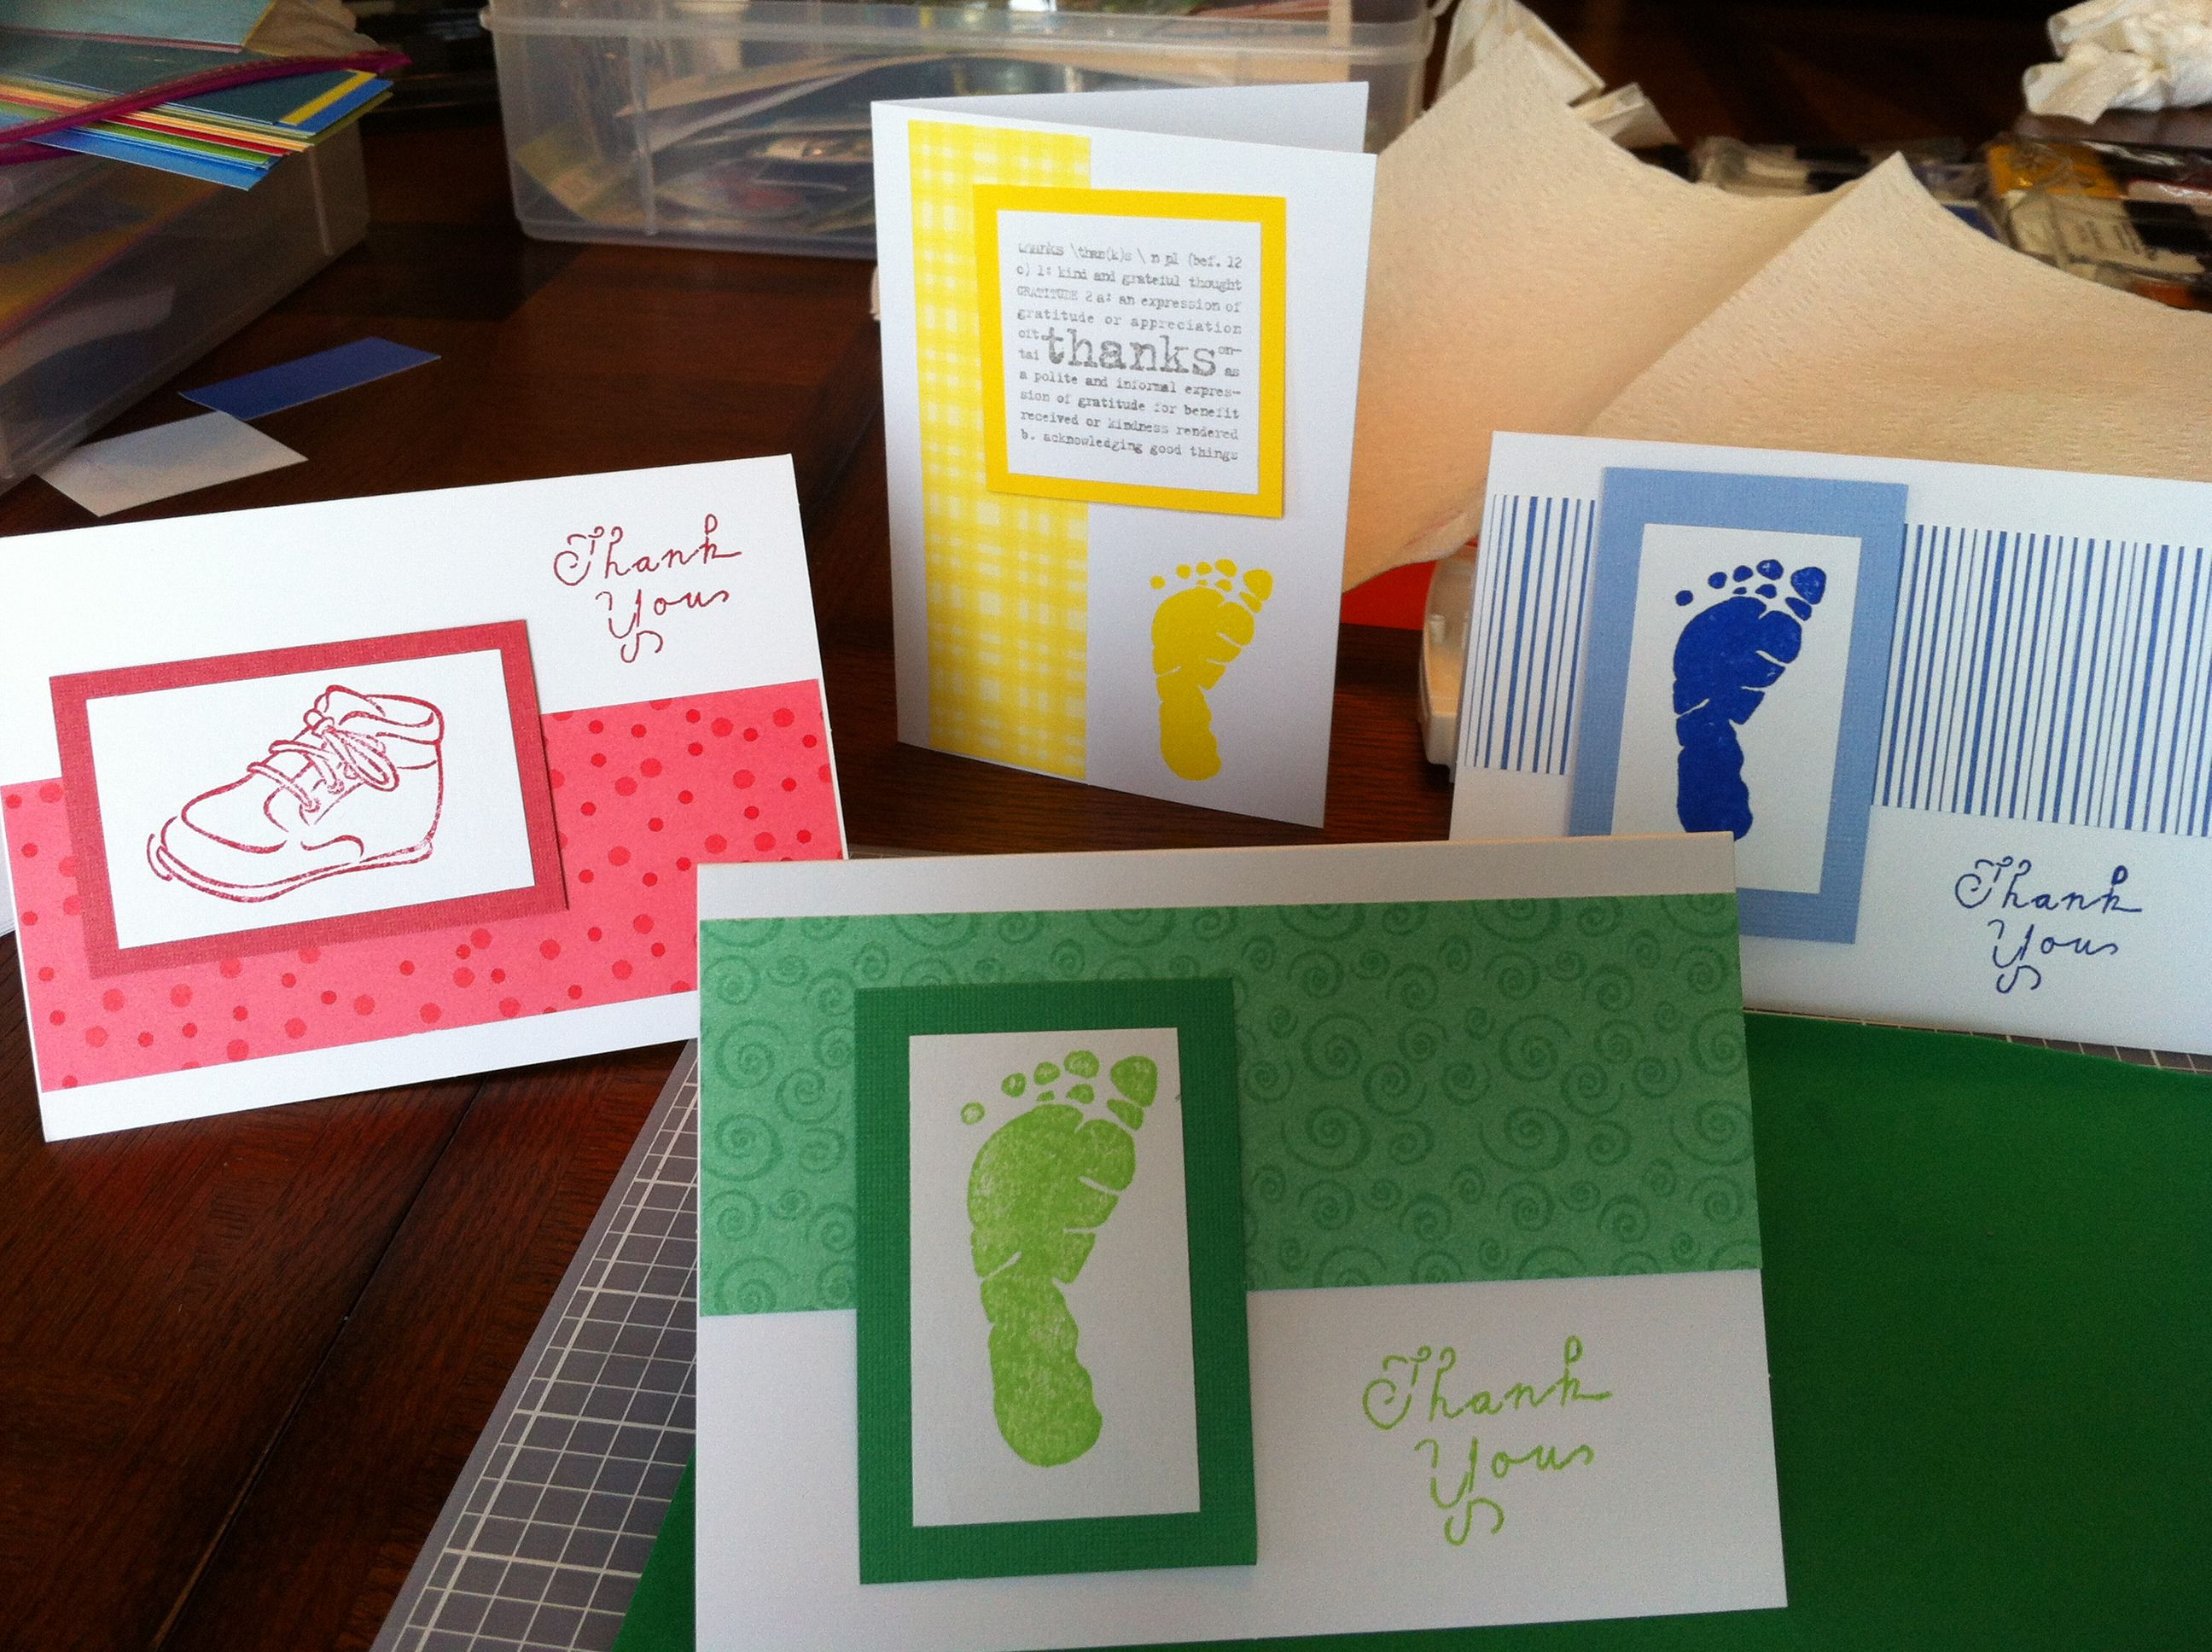 stampin' up thank you cardspreparing for upcoming baby